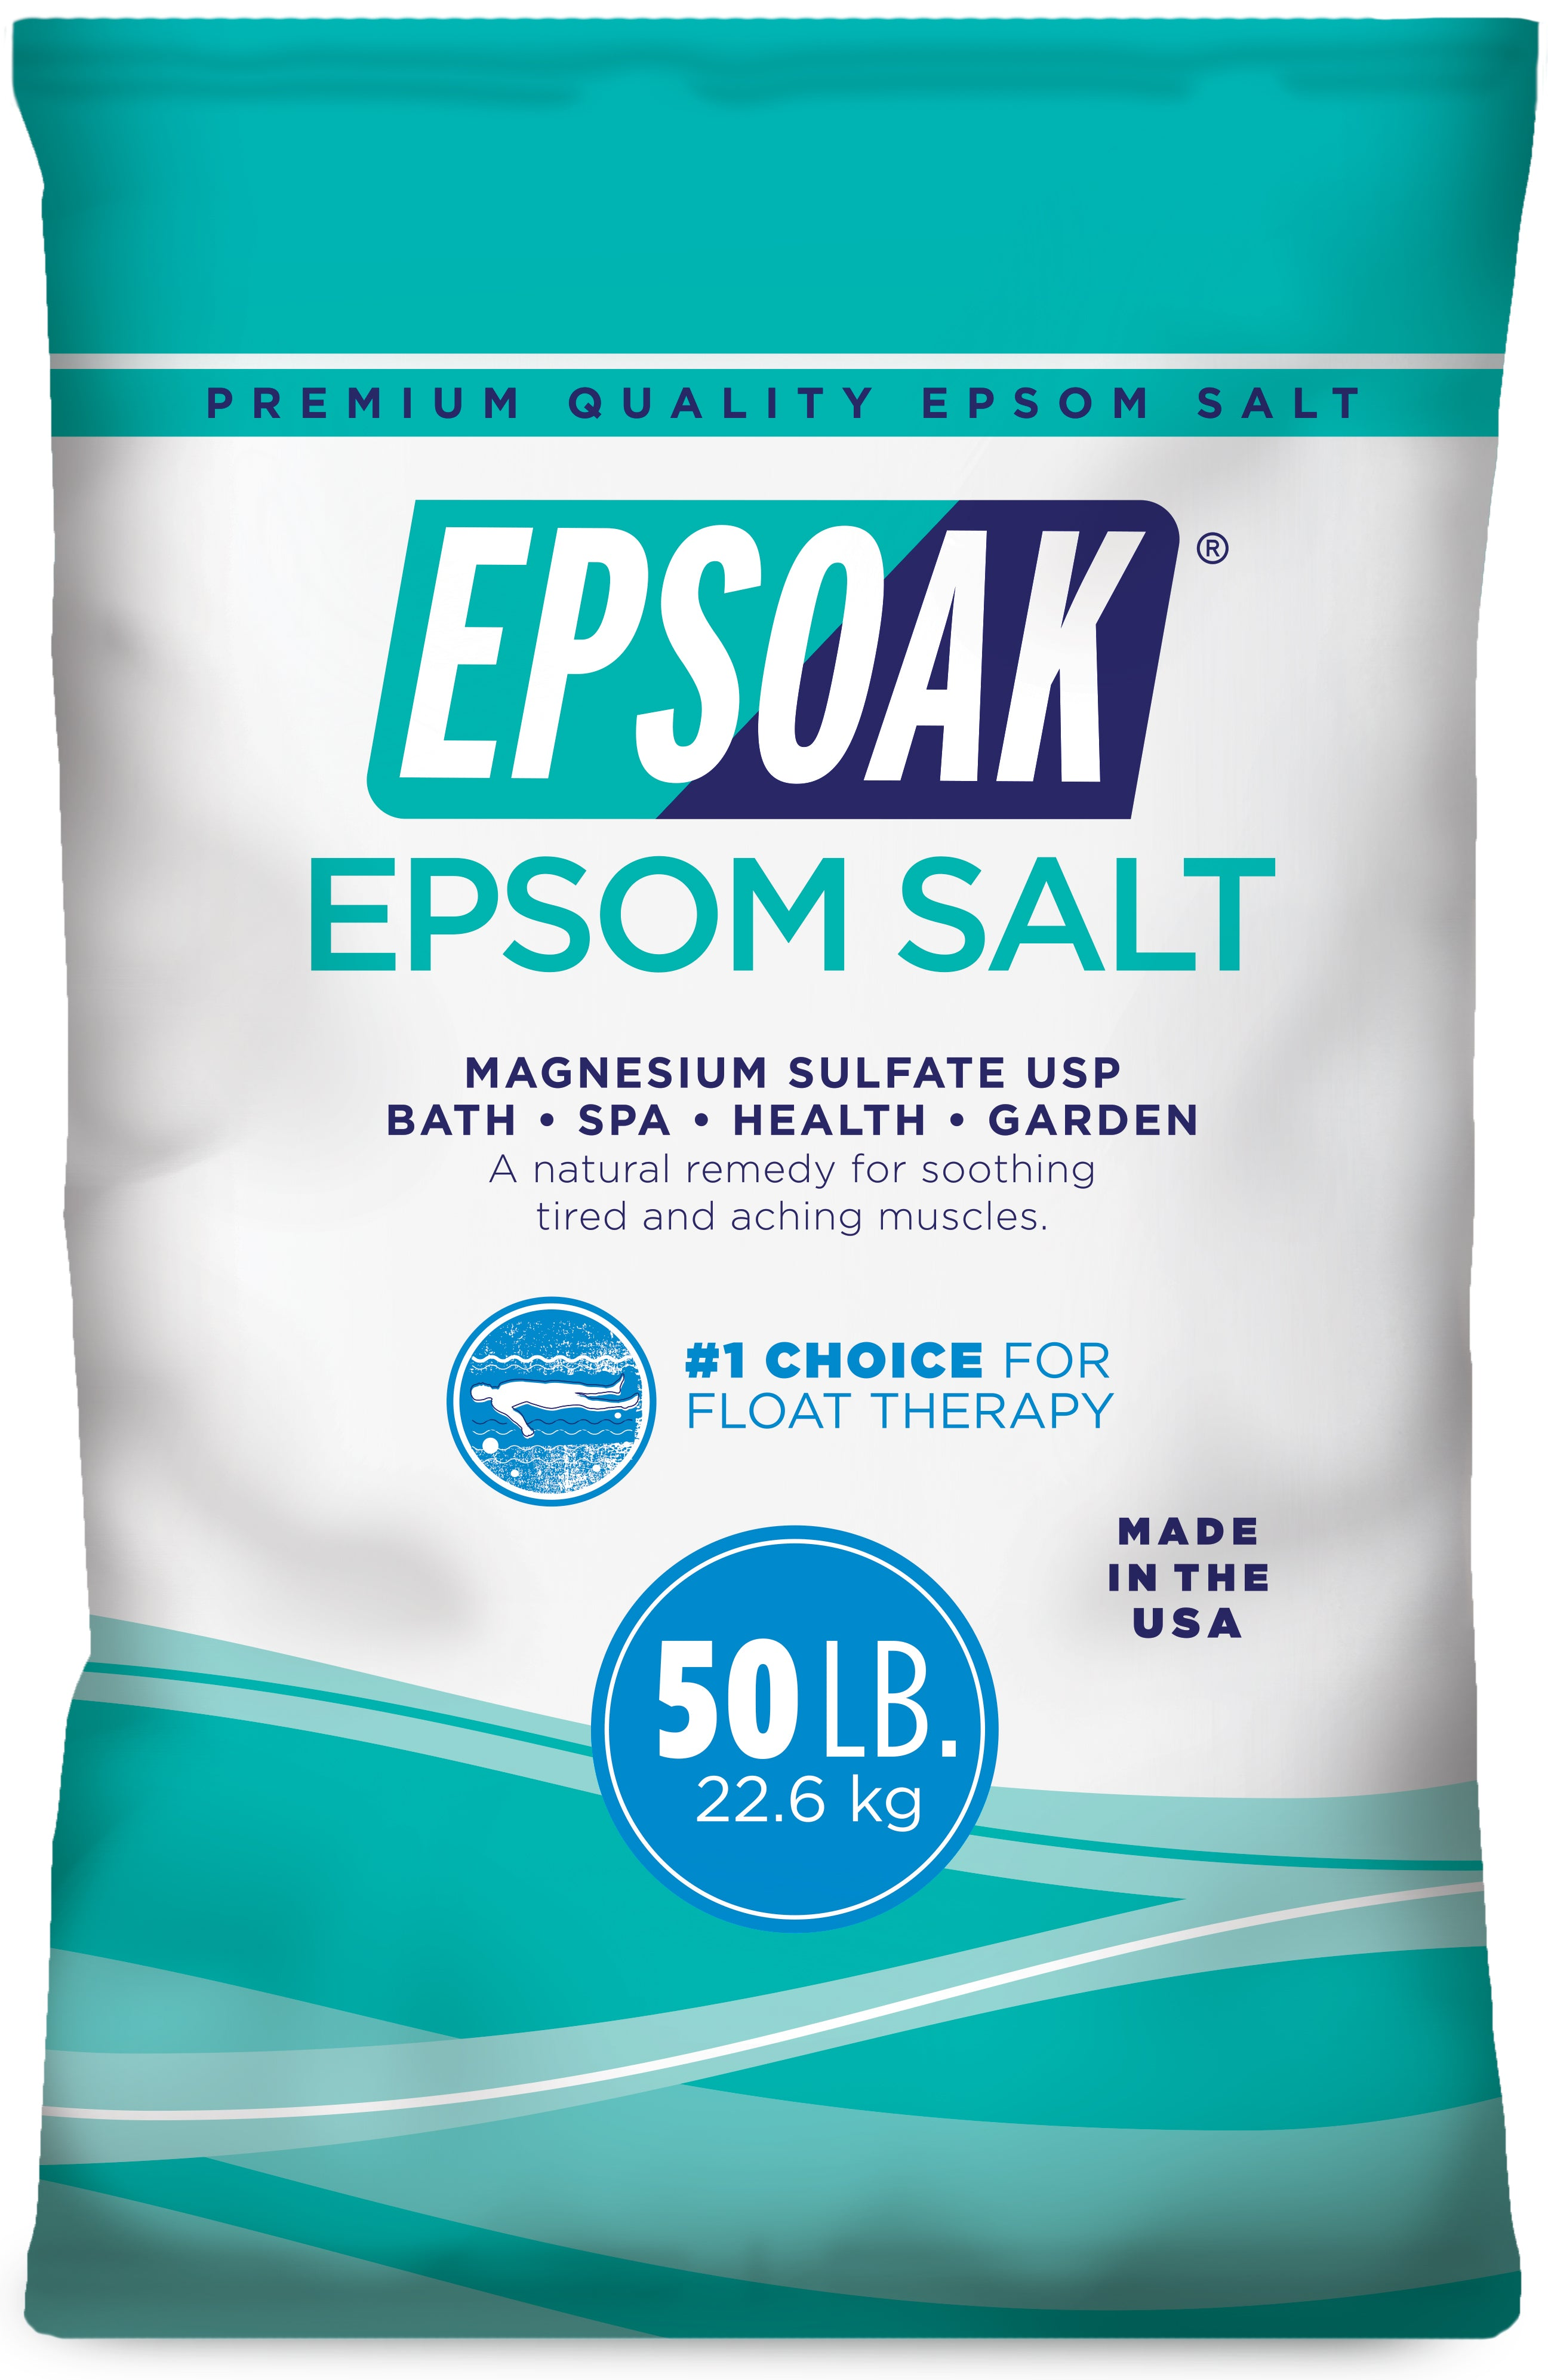 Epsoak Premium Epsom Salt for Floatation Tanks